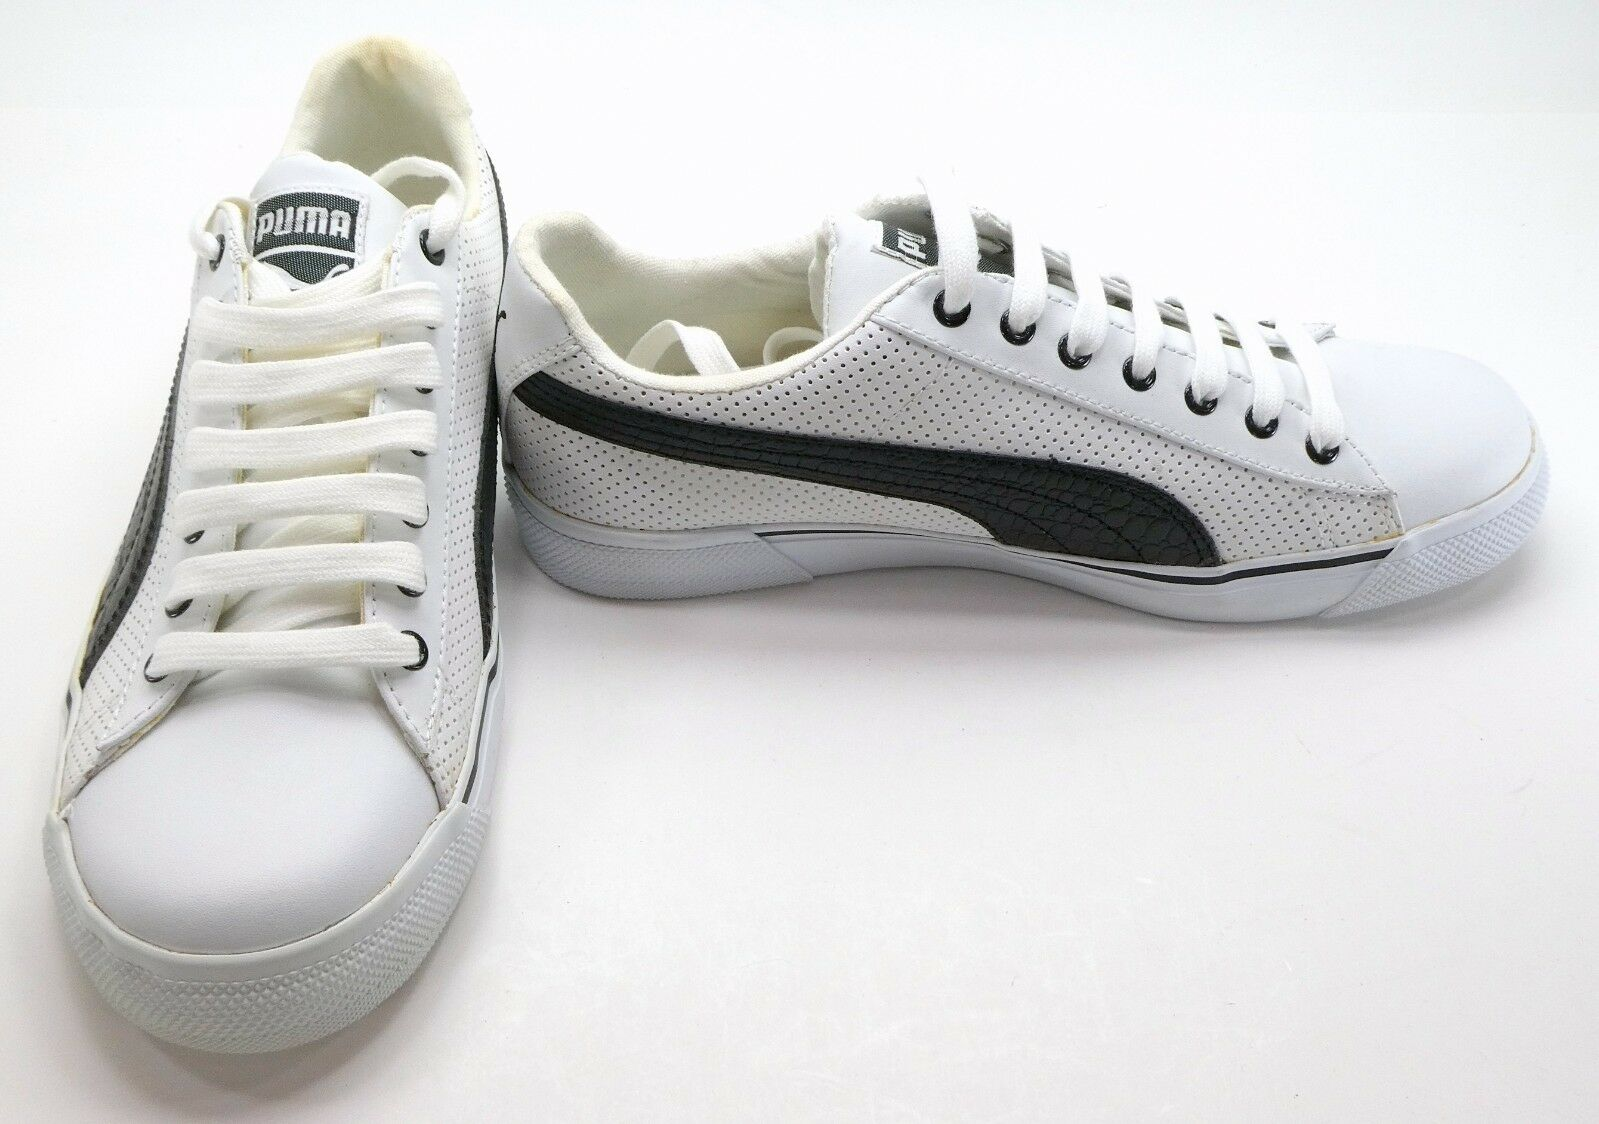 Puma Shoes Benny PL Reptile White/Black Sneakers Comfortable